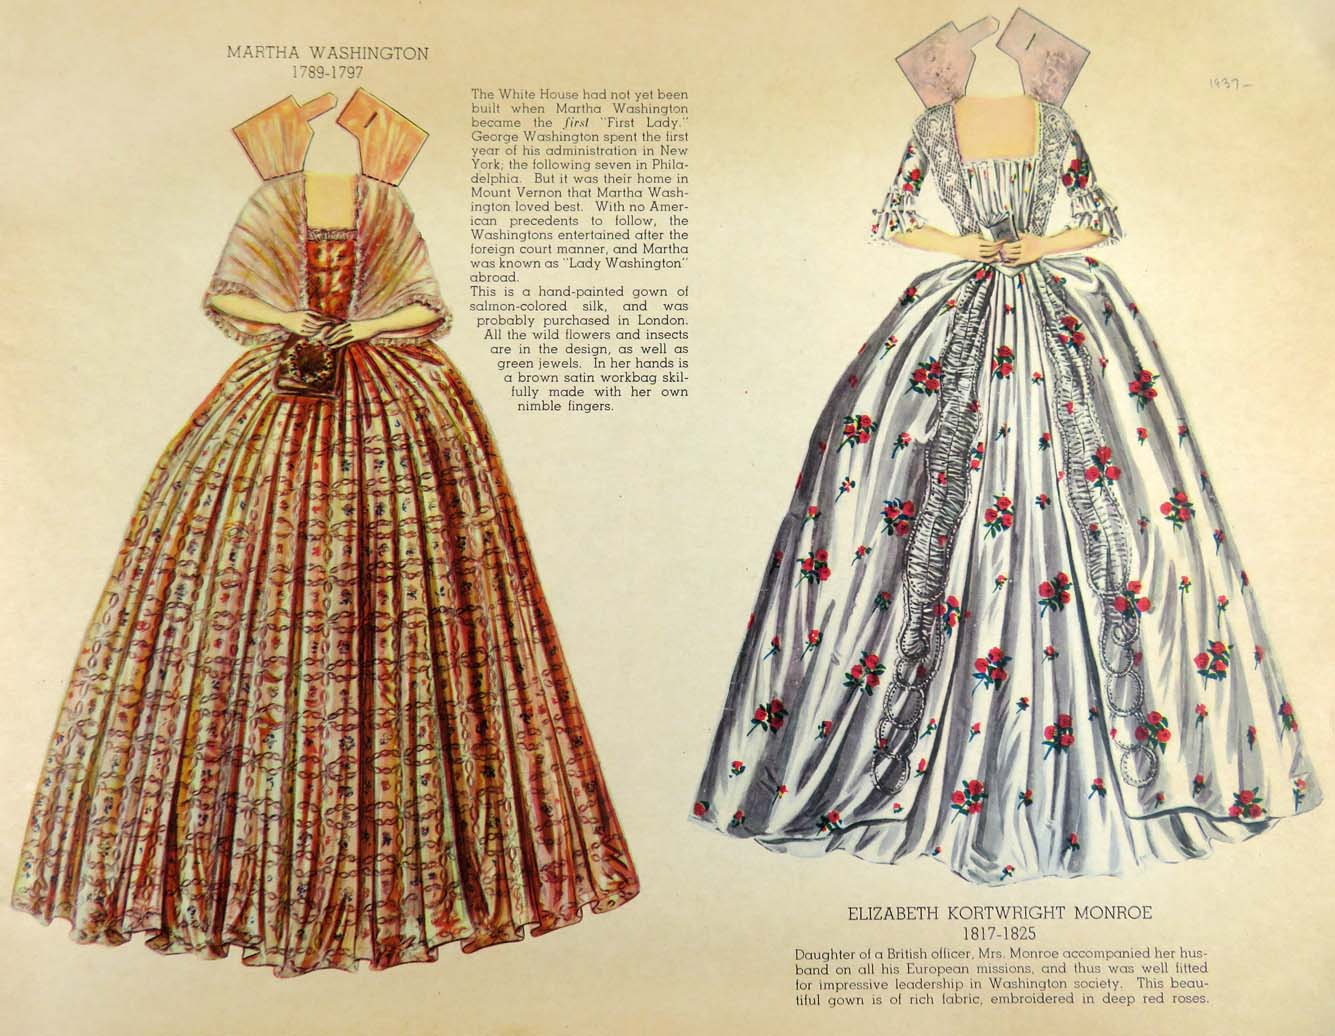 """Dresses worn by the """"First Ladies\' of the White House 